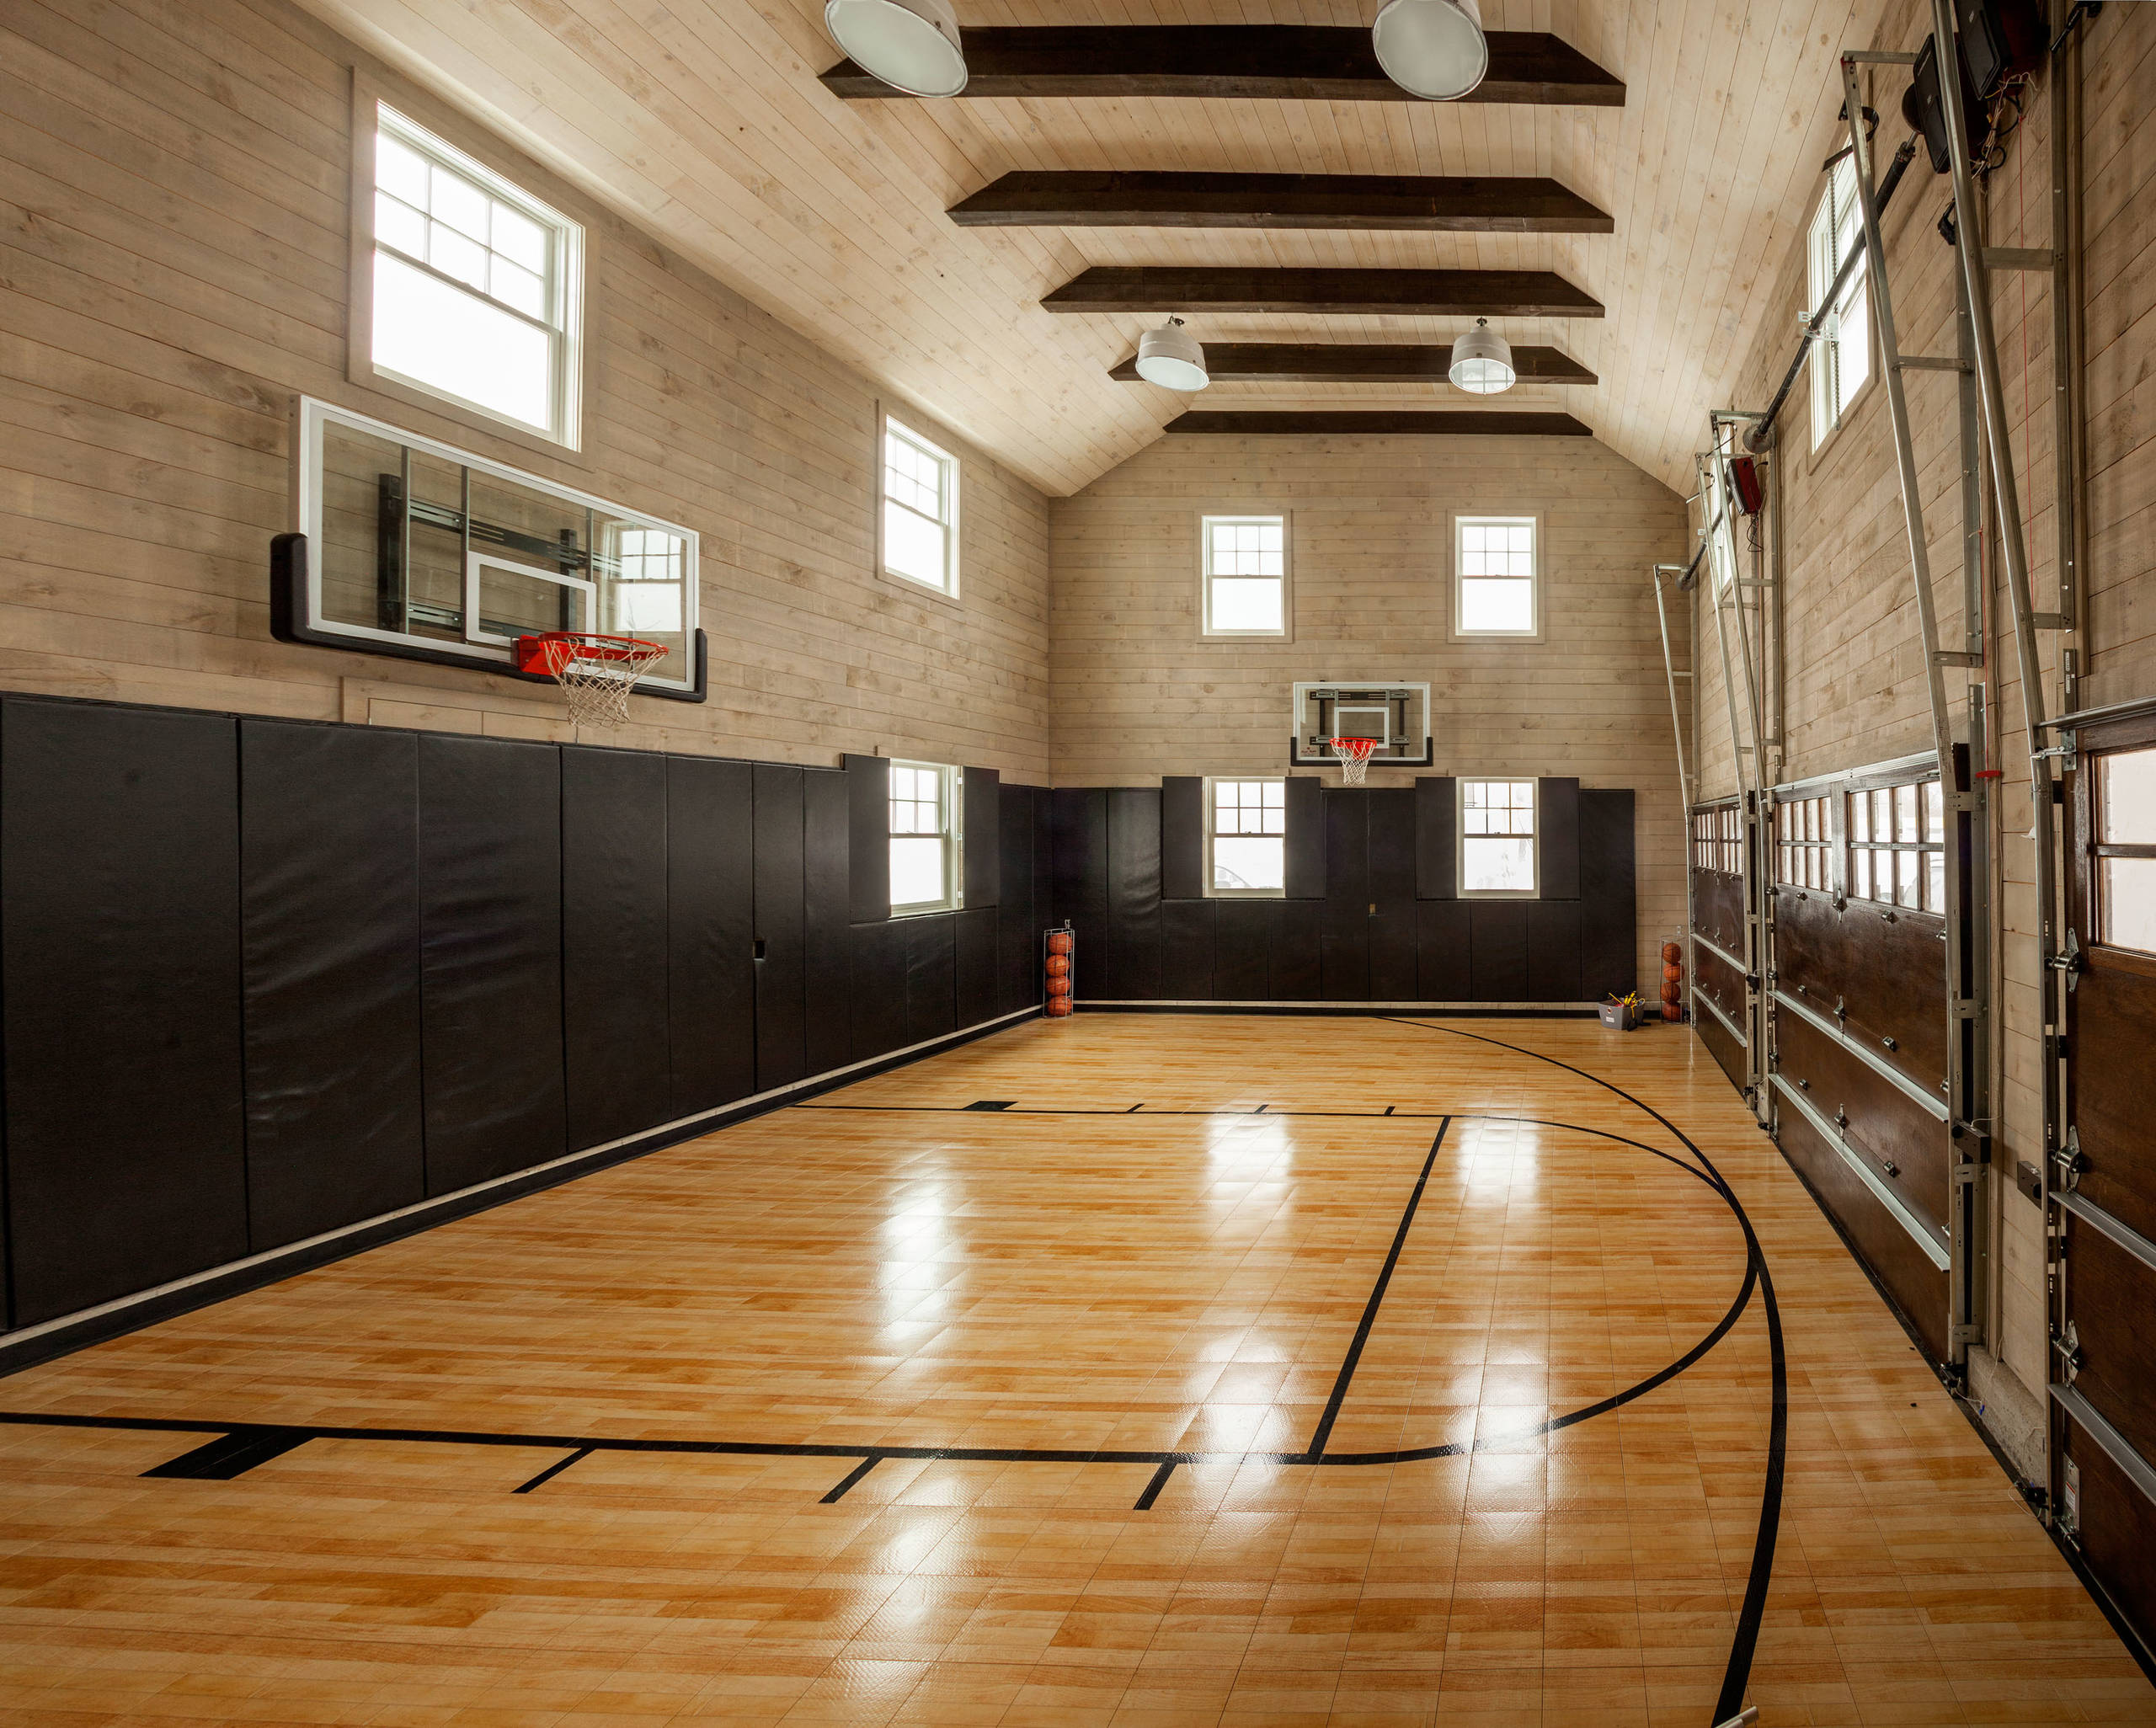 Indoor Basketball Court Ideas Houzz